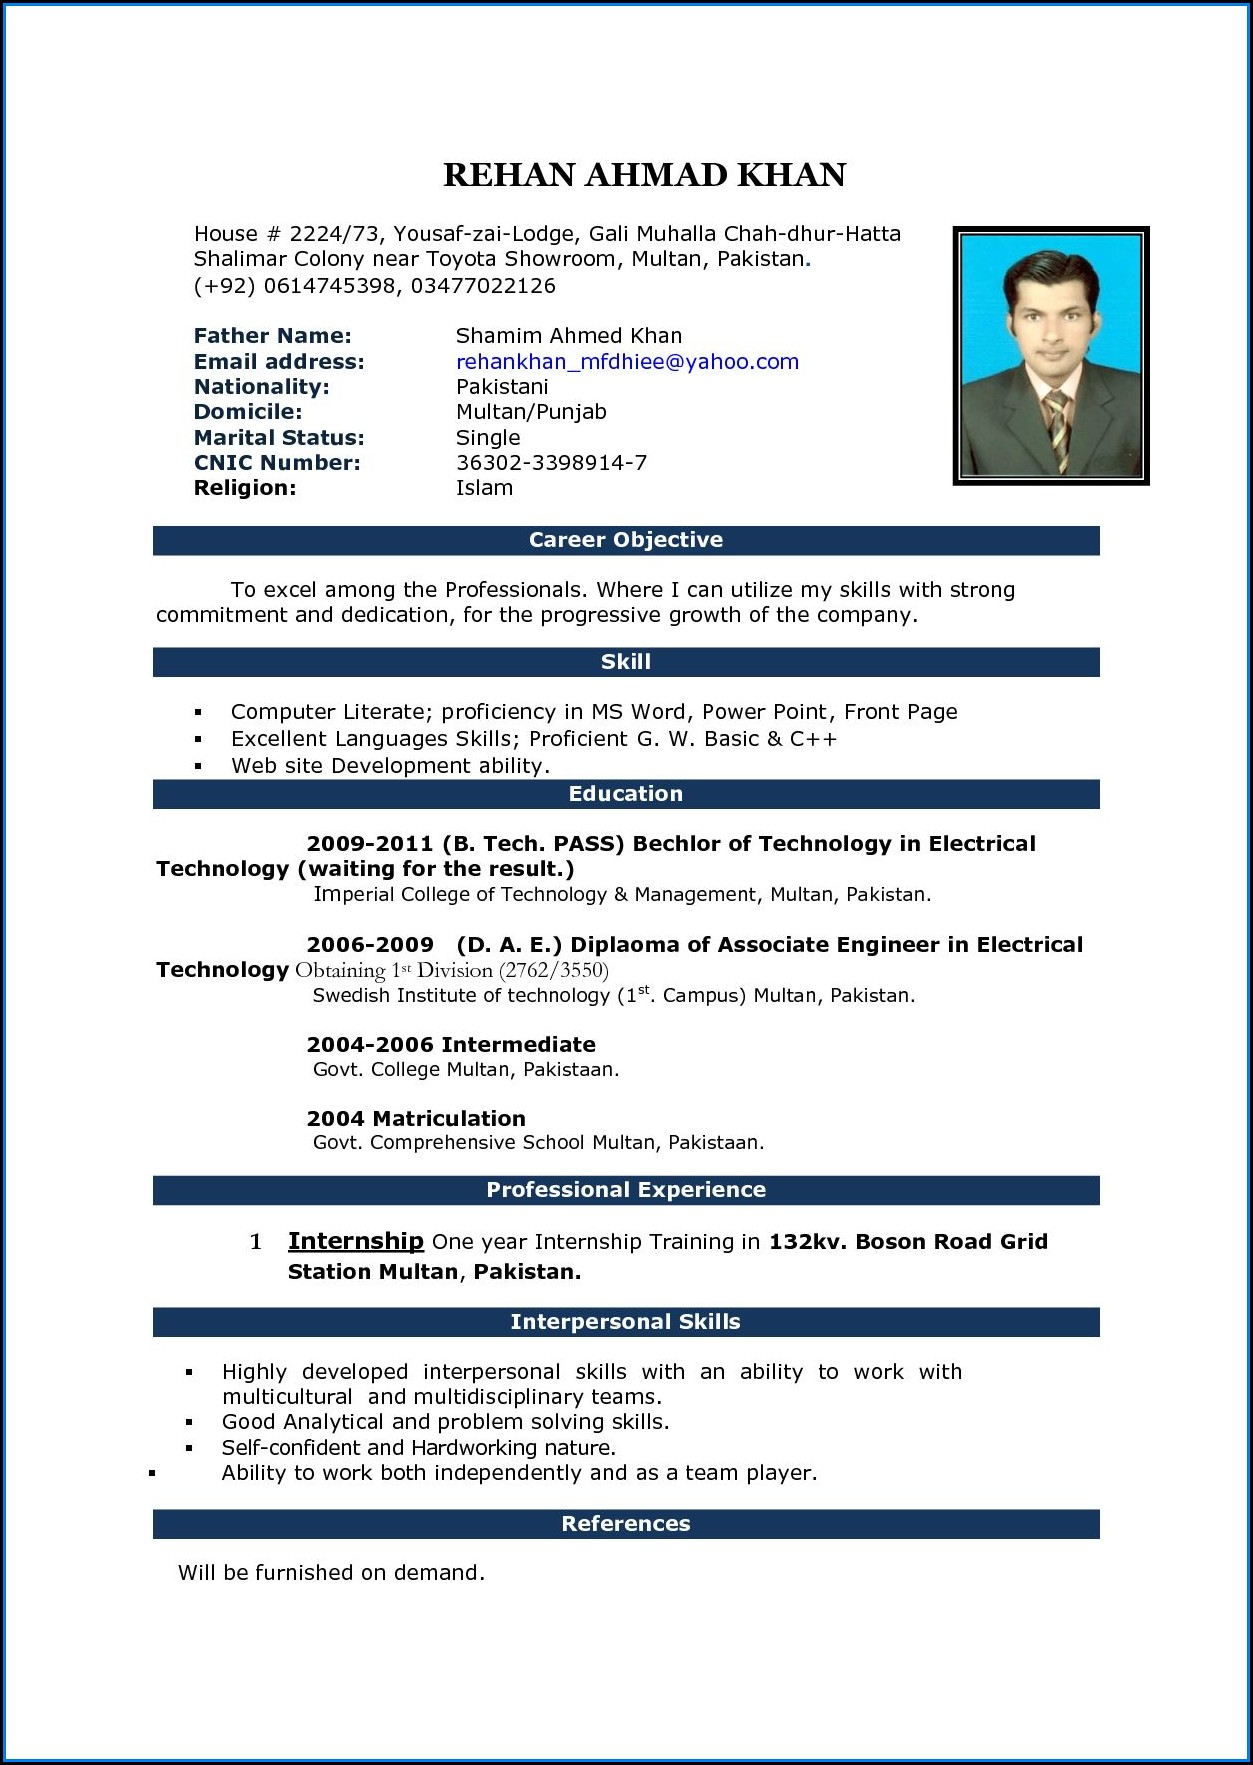 Resume Templates Microsoft Word Download